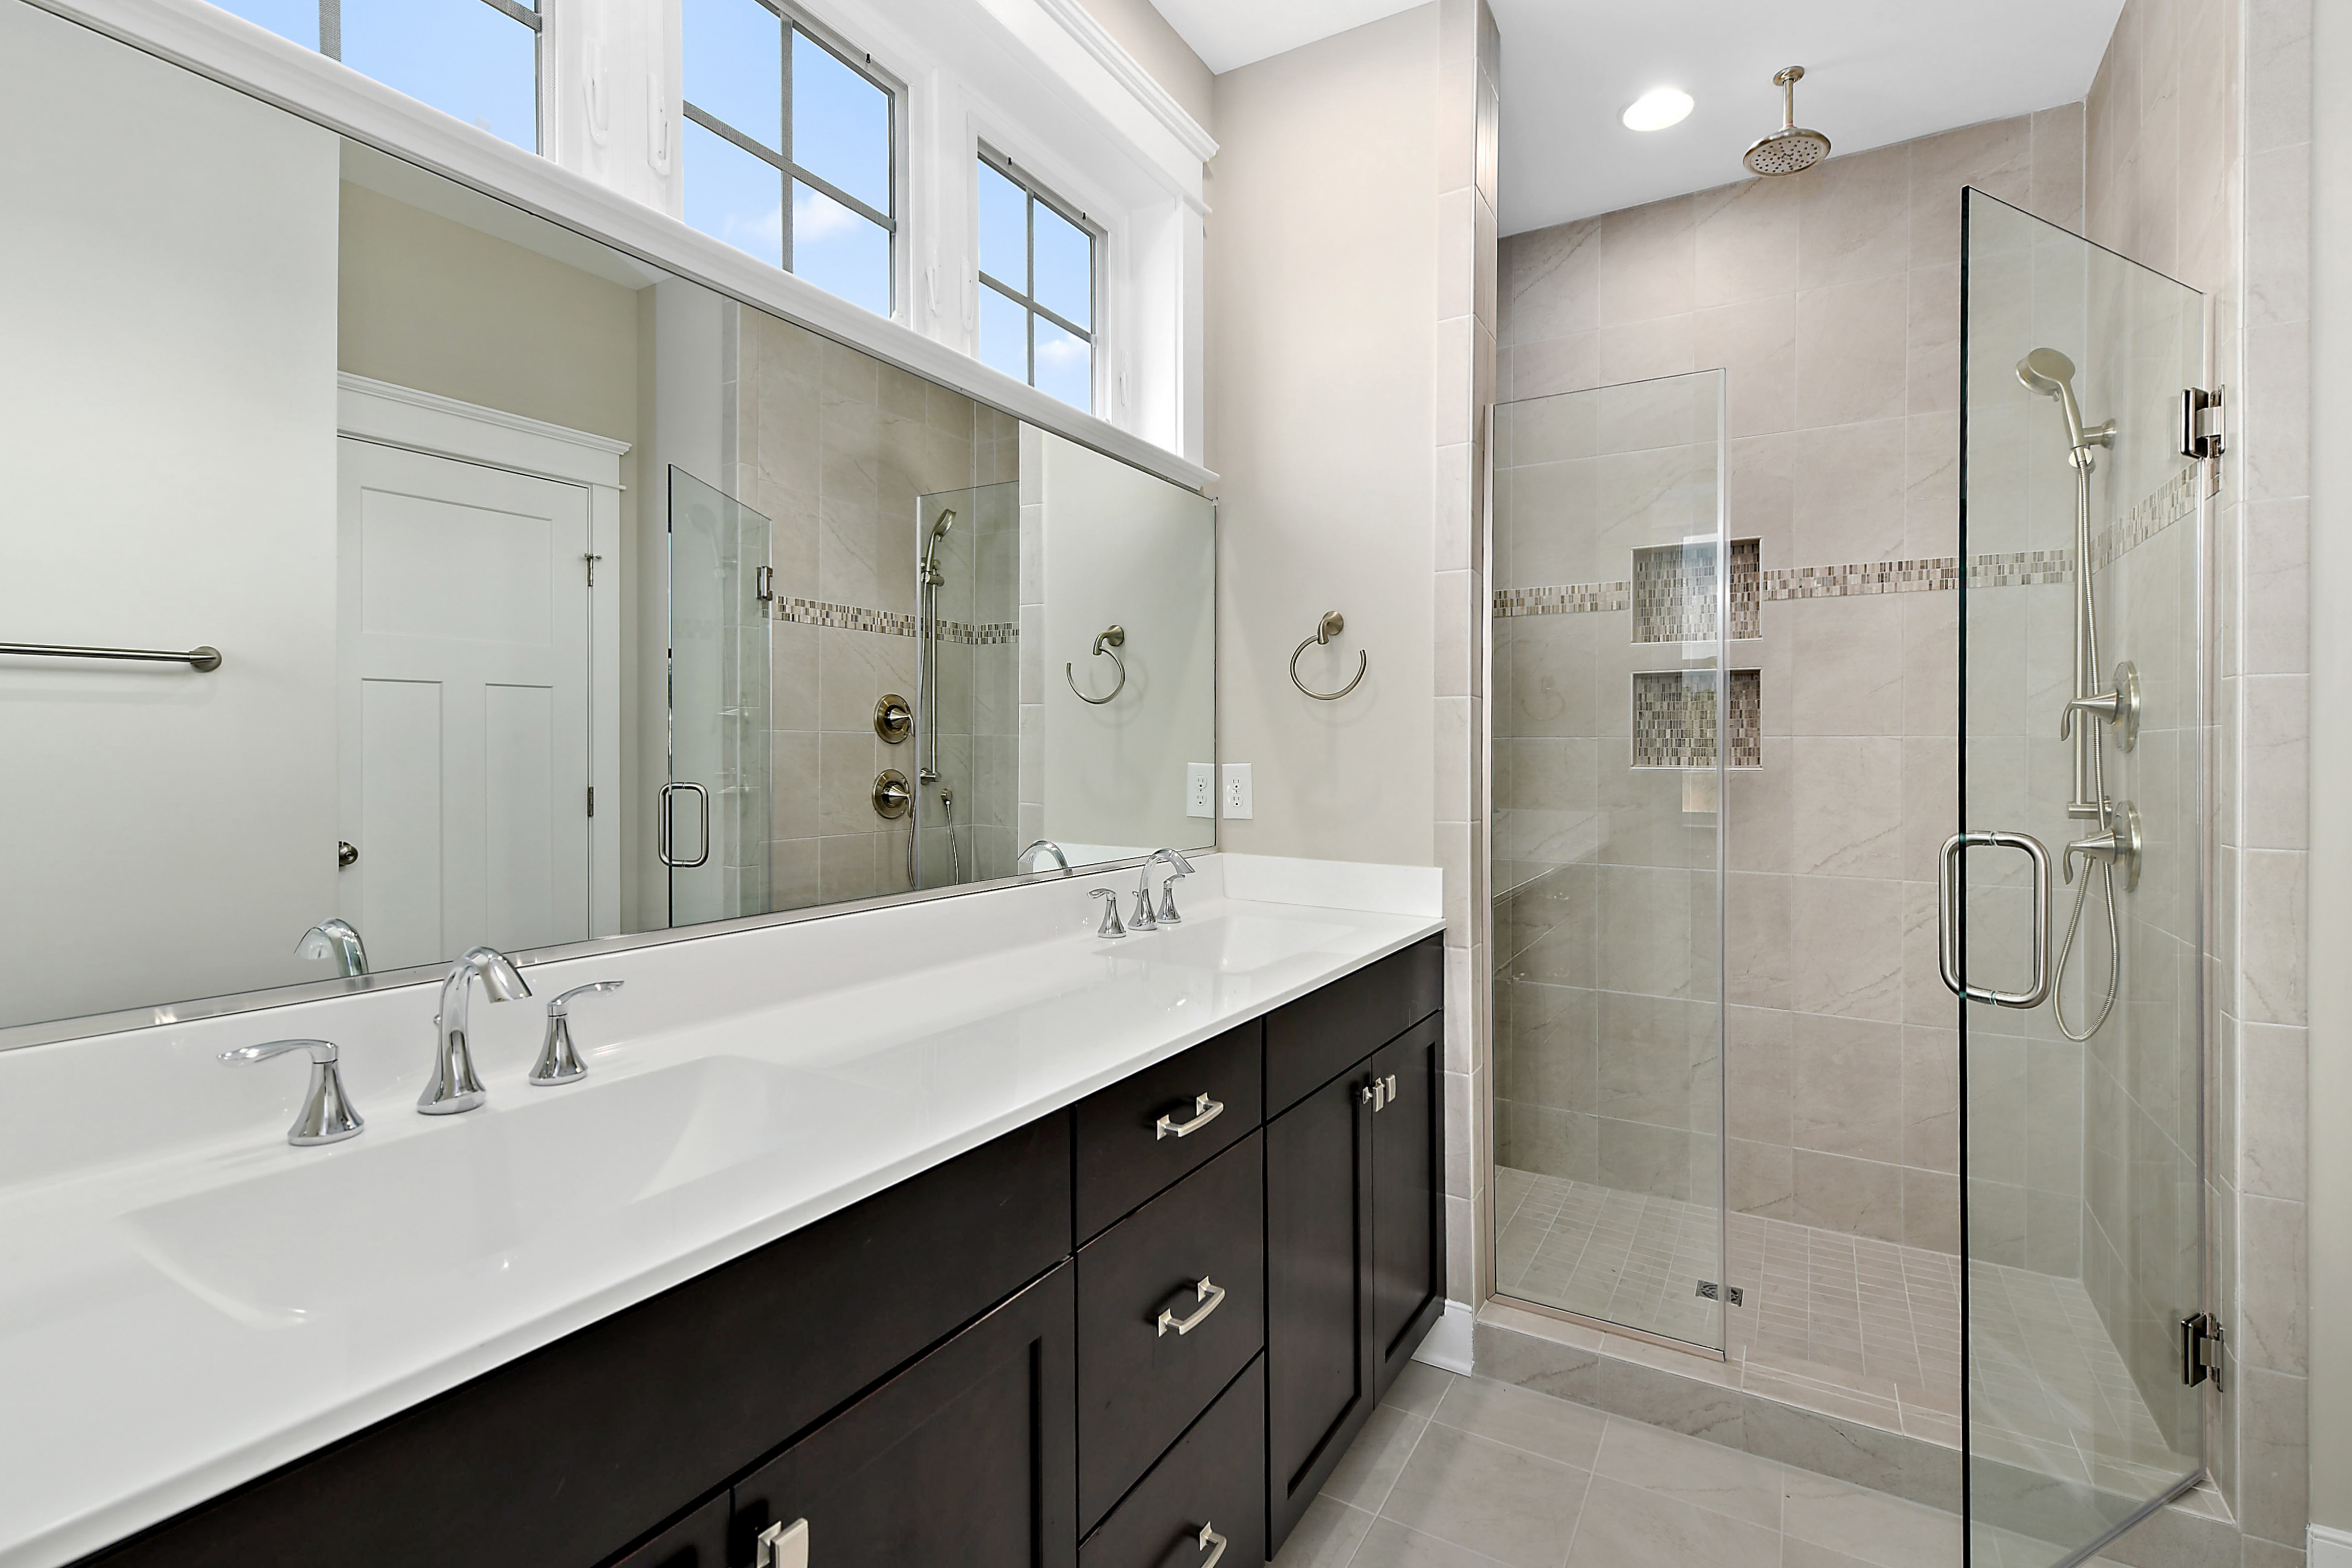 Owner Bathroom Double Vanity and Frameless Shower Door